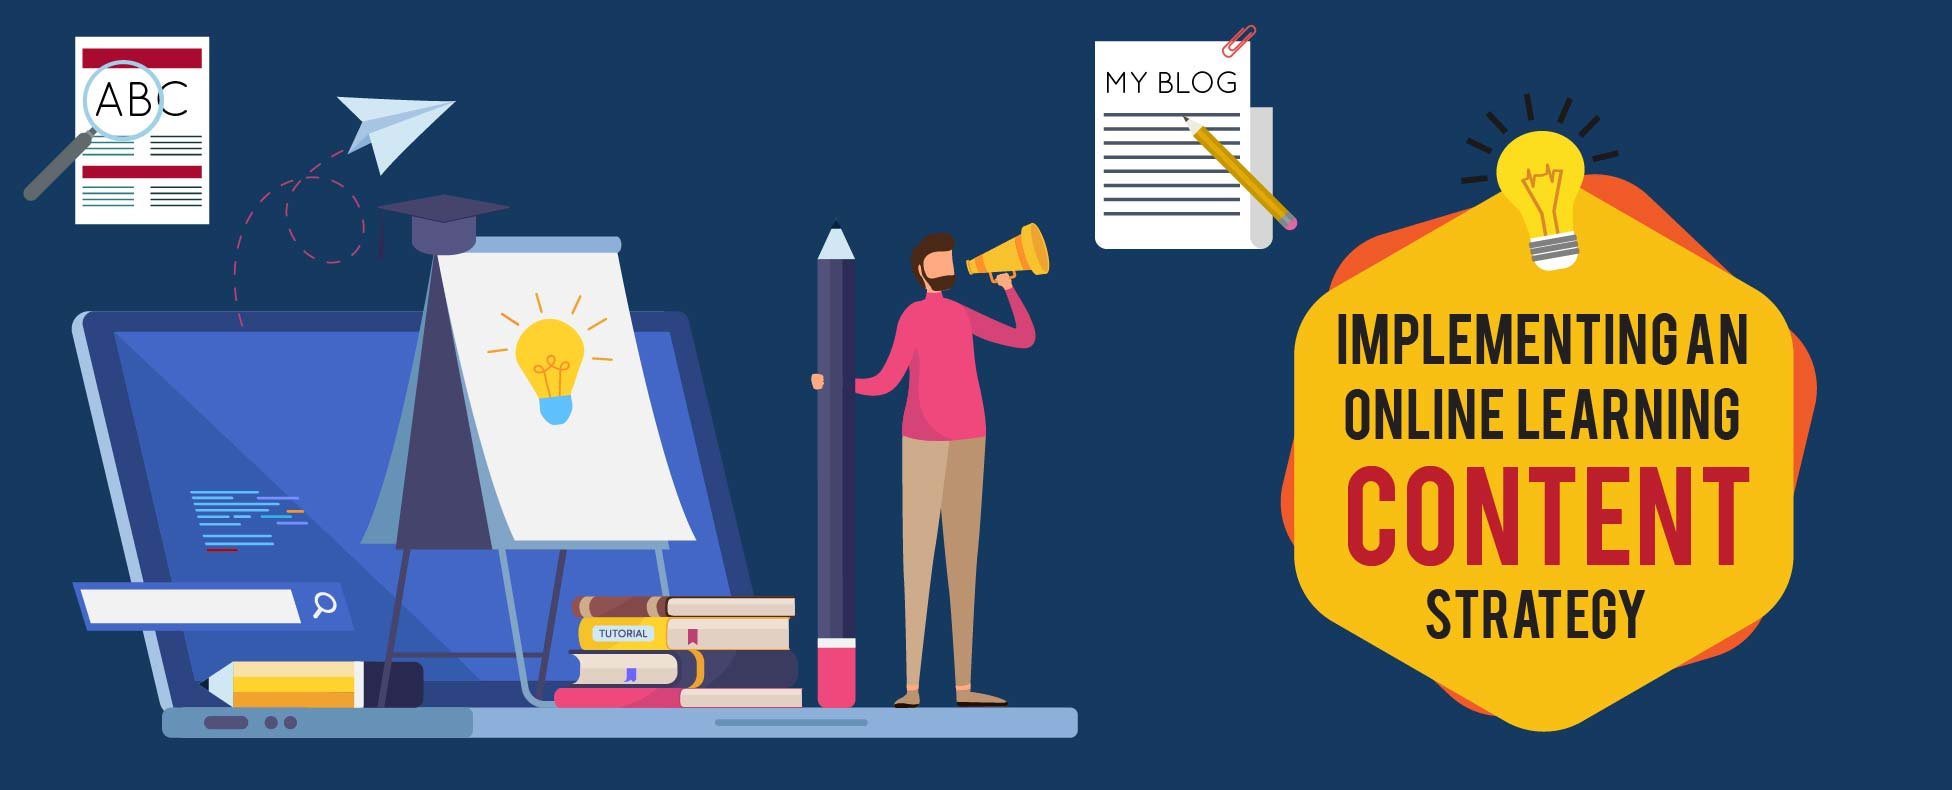 Implementing an online learning content strategy